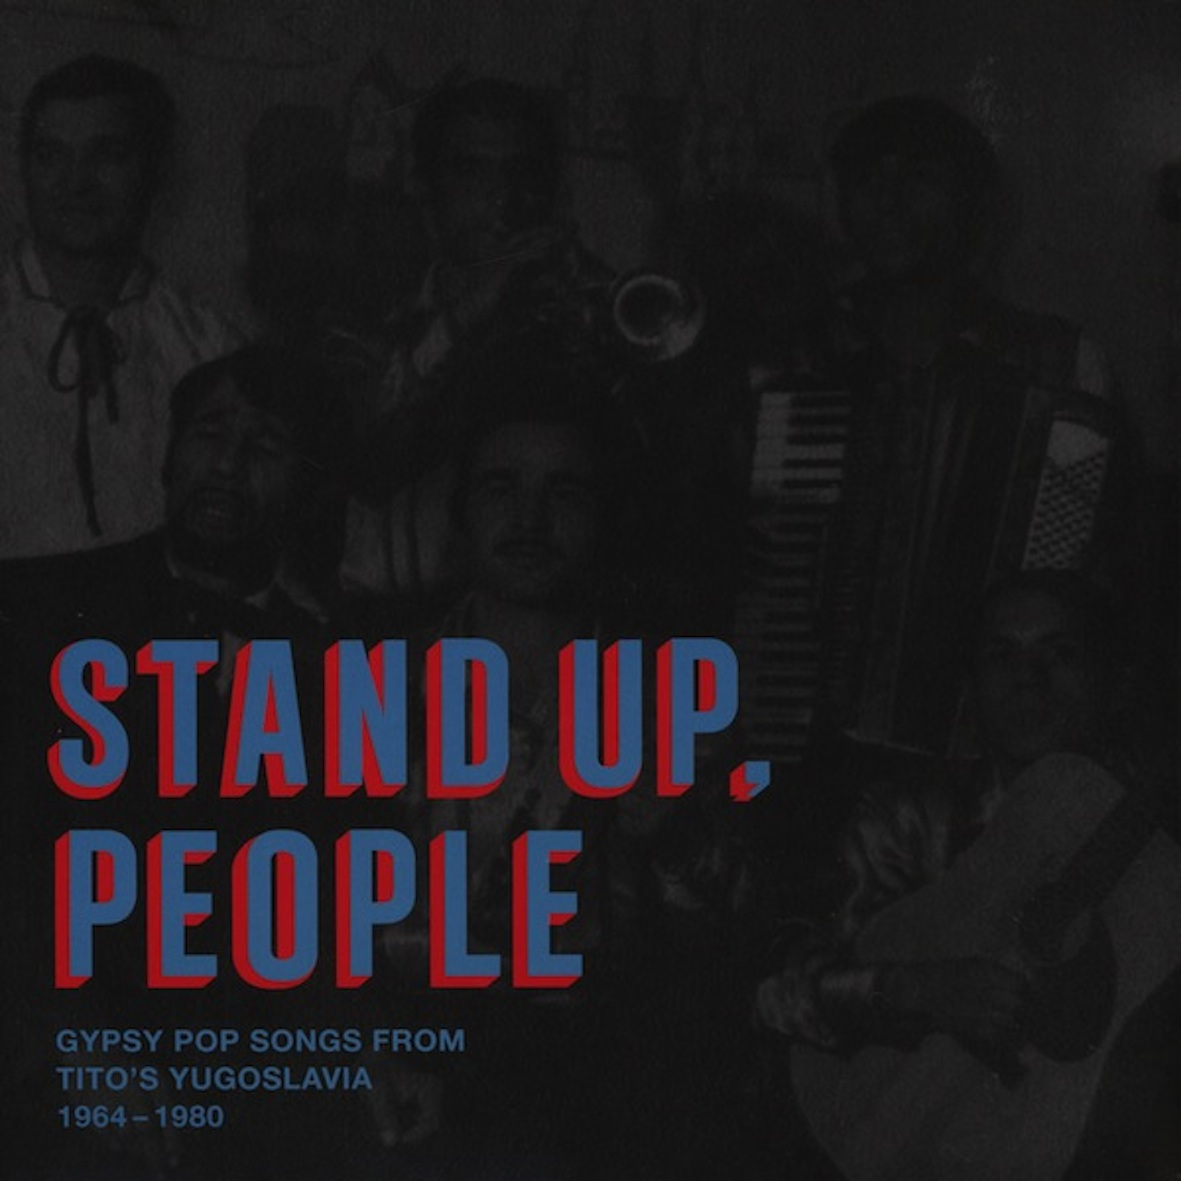 Calgija, Romani, Gypsy, Yugoslavia, Serbia, Slovenia, Croatia, Bosnia, Macedonia, Montenegro, Kosovo,Test Pressing, Reviews, On The Rebound, Dr Rob, Stand Up People, Vlax, Asphalt Tango, Balkans, Esma Redzepova, Saban Bajramovic,